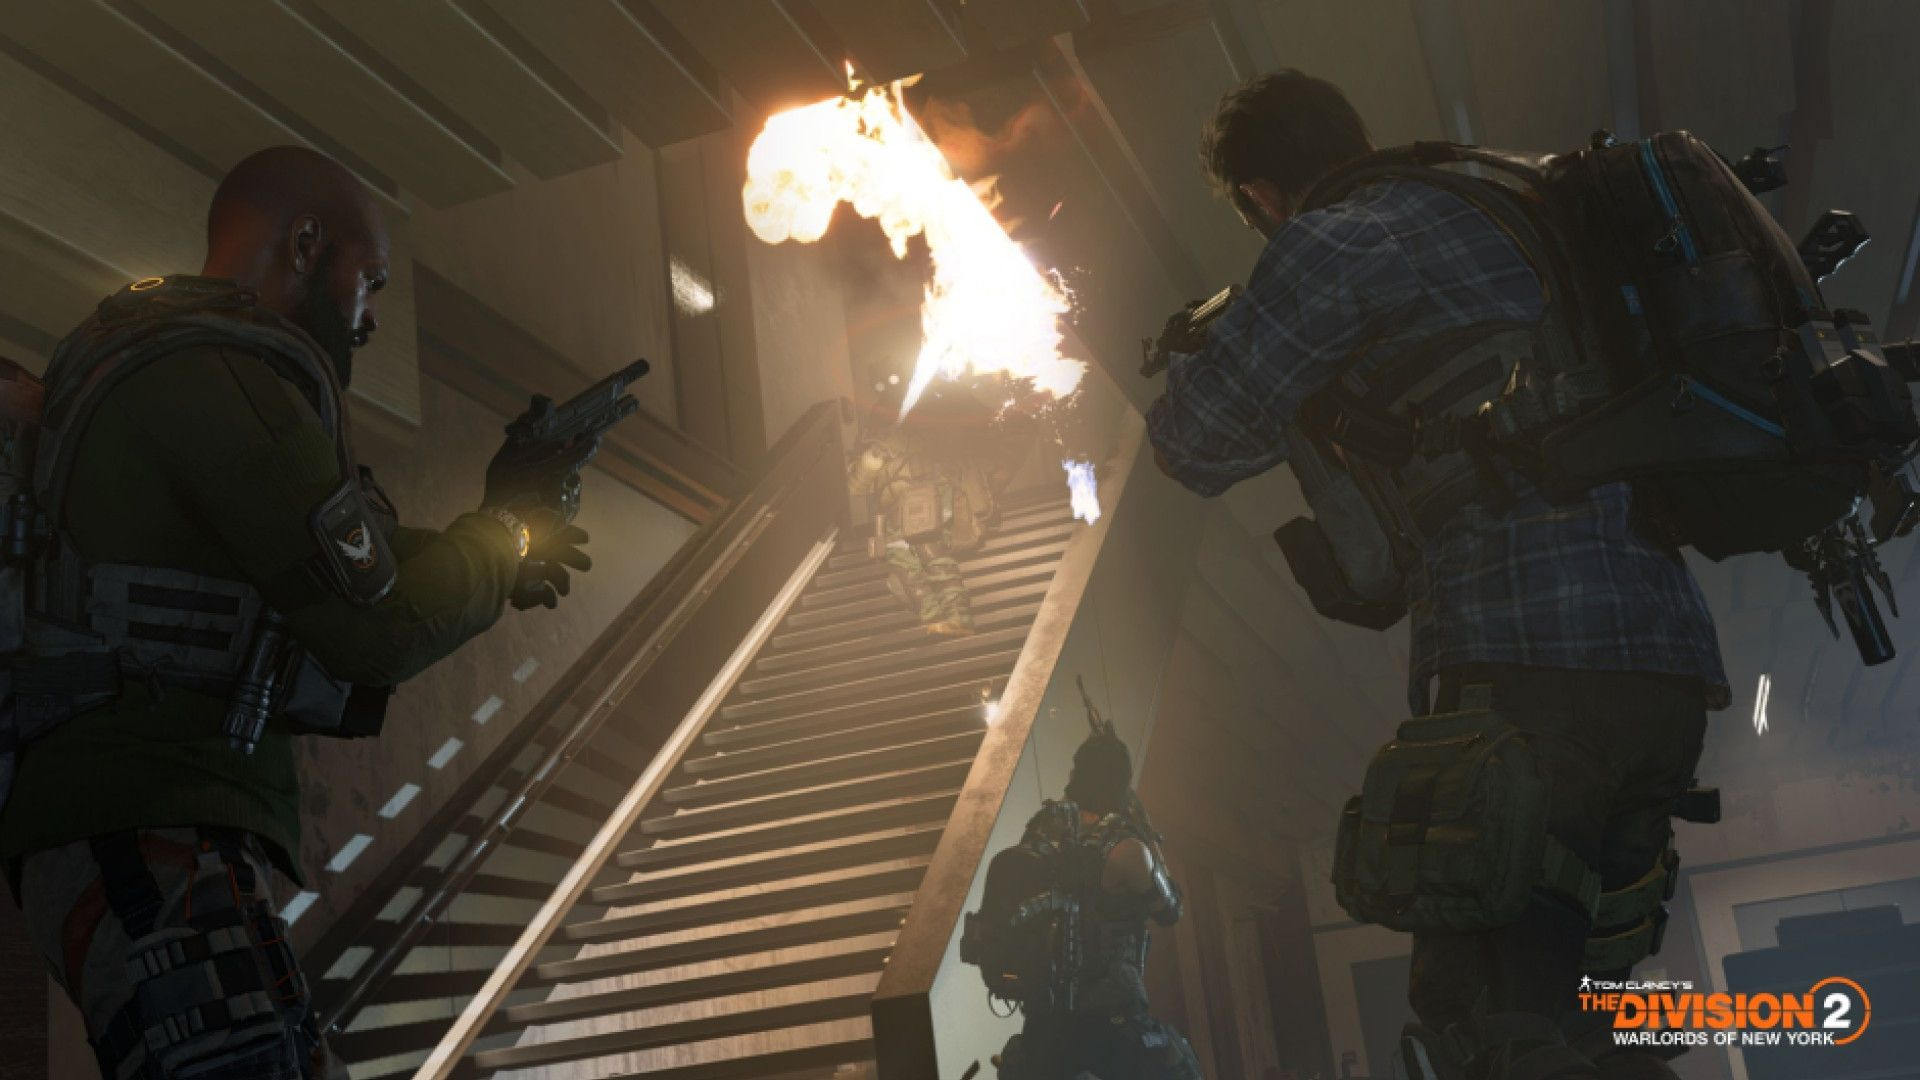 Fight 100 Floors Of Foes In The Division 2s The Summit In 2020 Transmogrification Live In The Now The Warlord